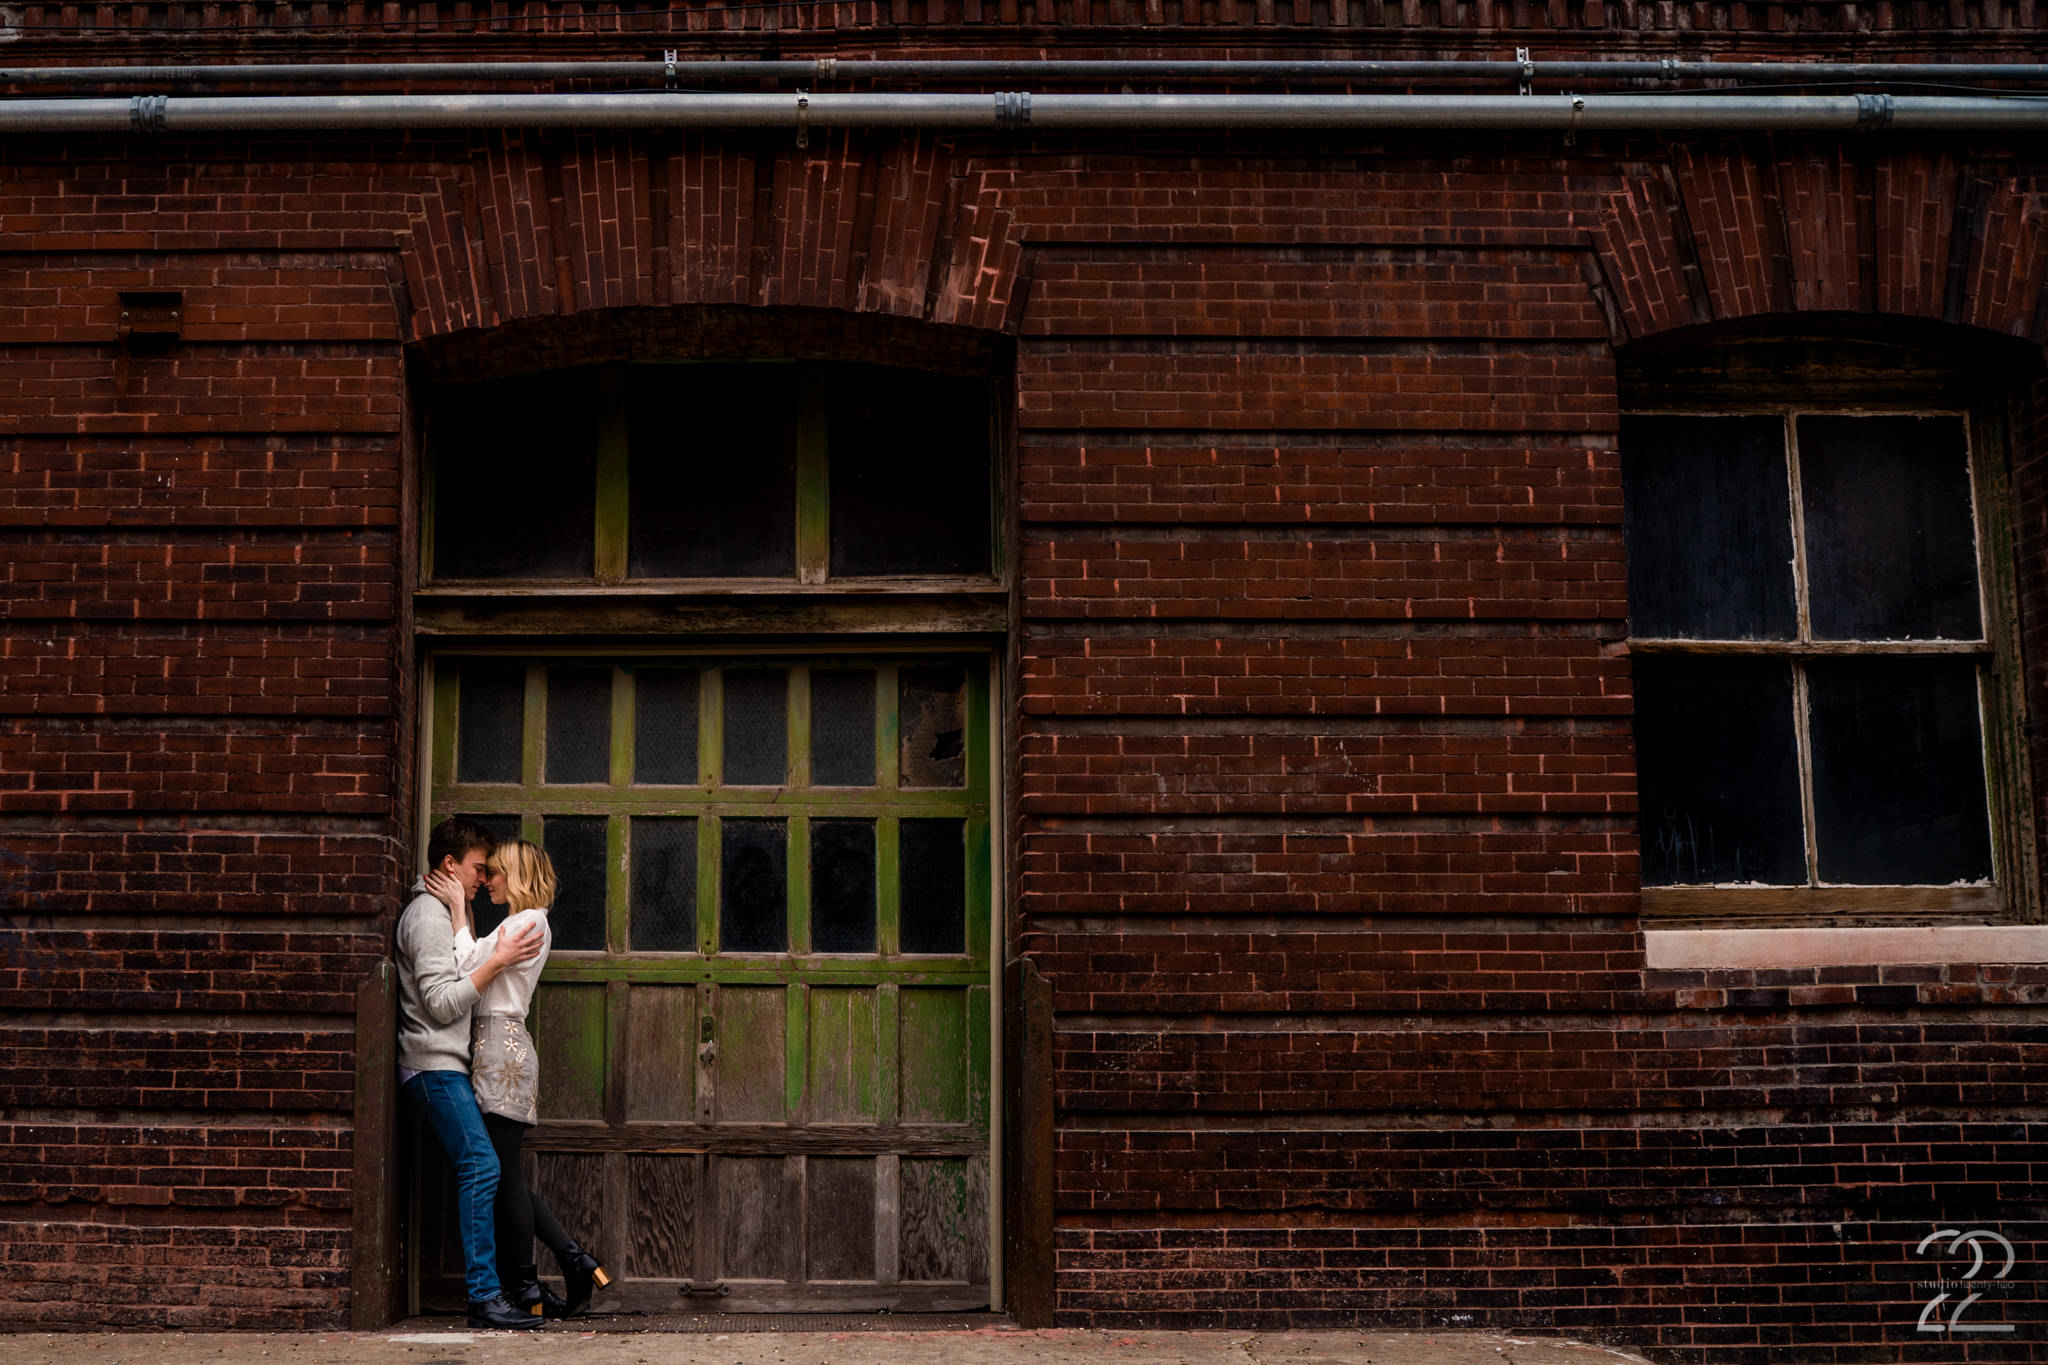 Kansas City Engagement Photos - Studio 22 Photography